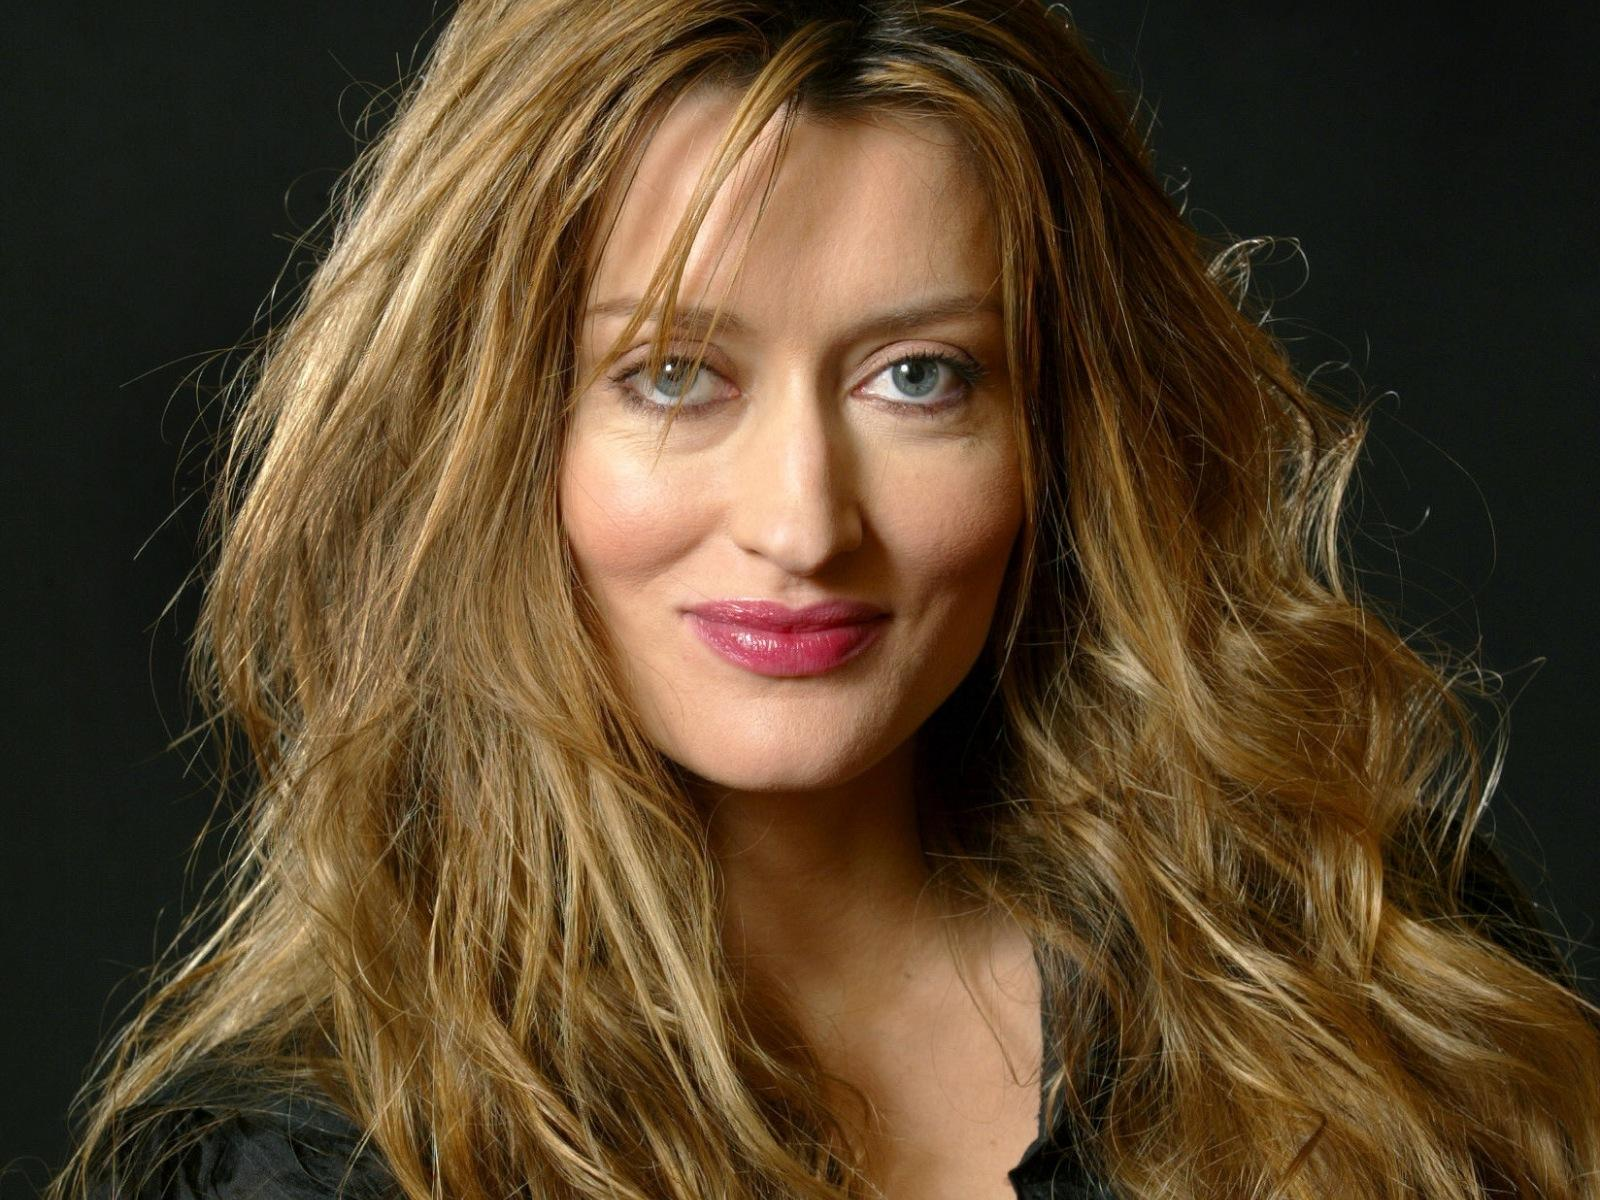 Please check our widescreen hd wallpaper below and bring beauty to your desktop. Cute Natascha McElhone HD Wallpaper